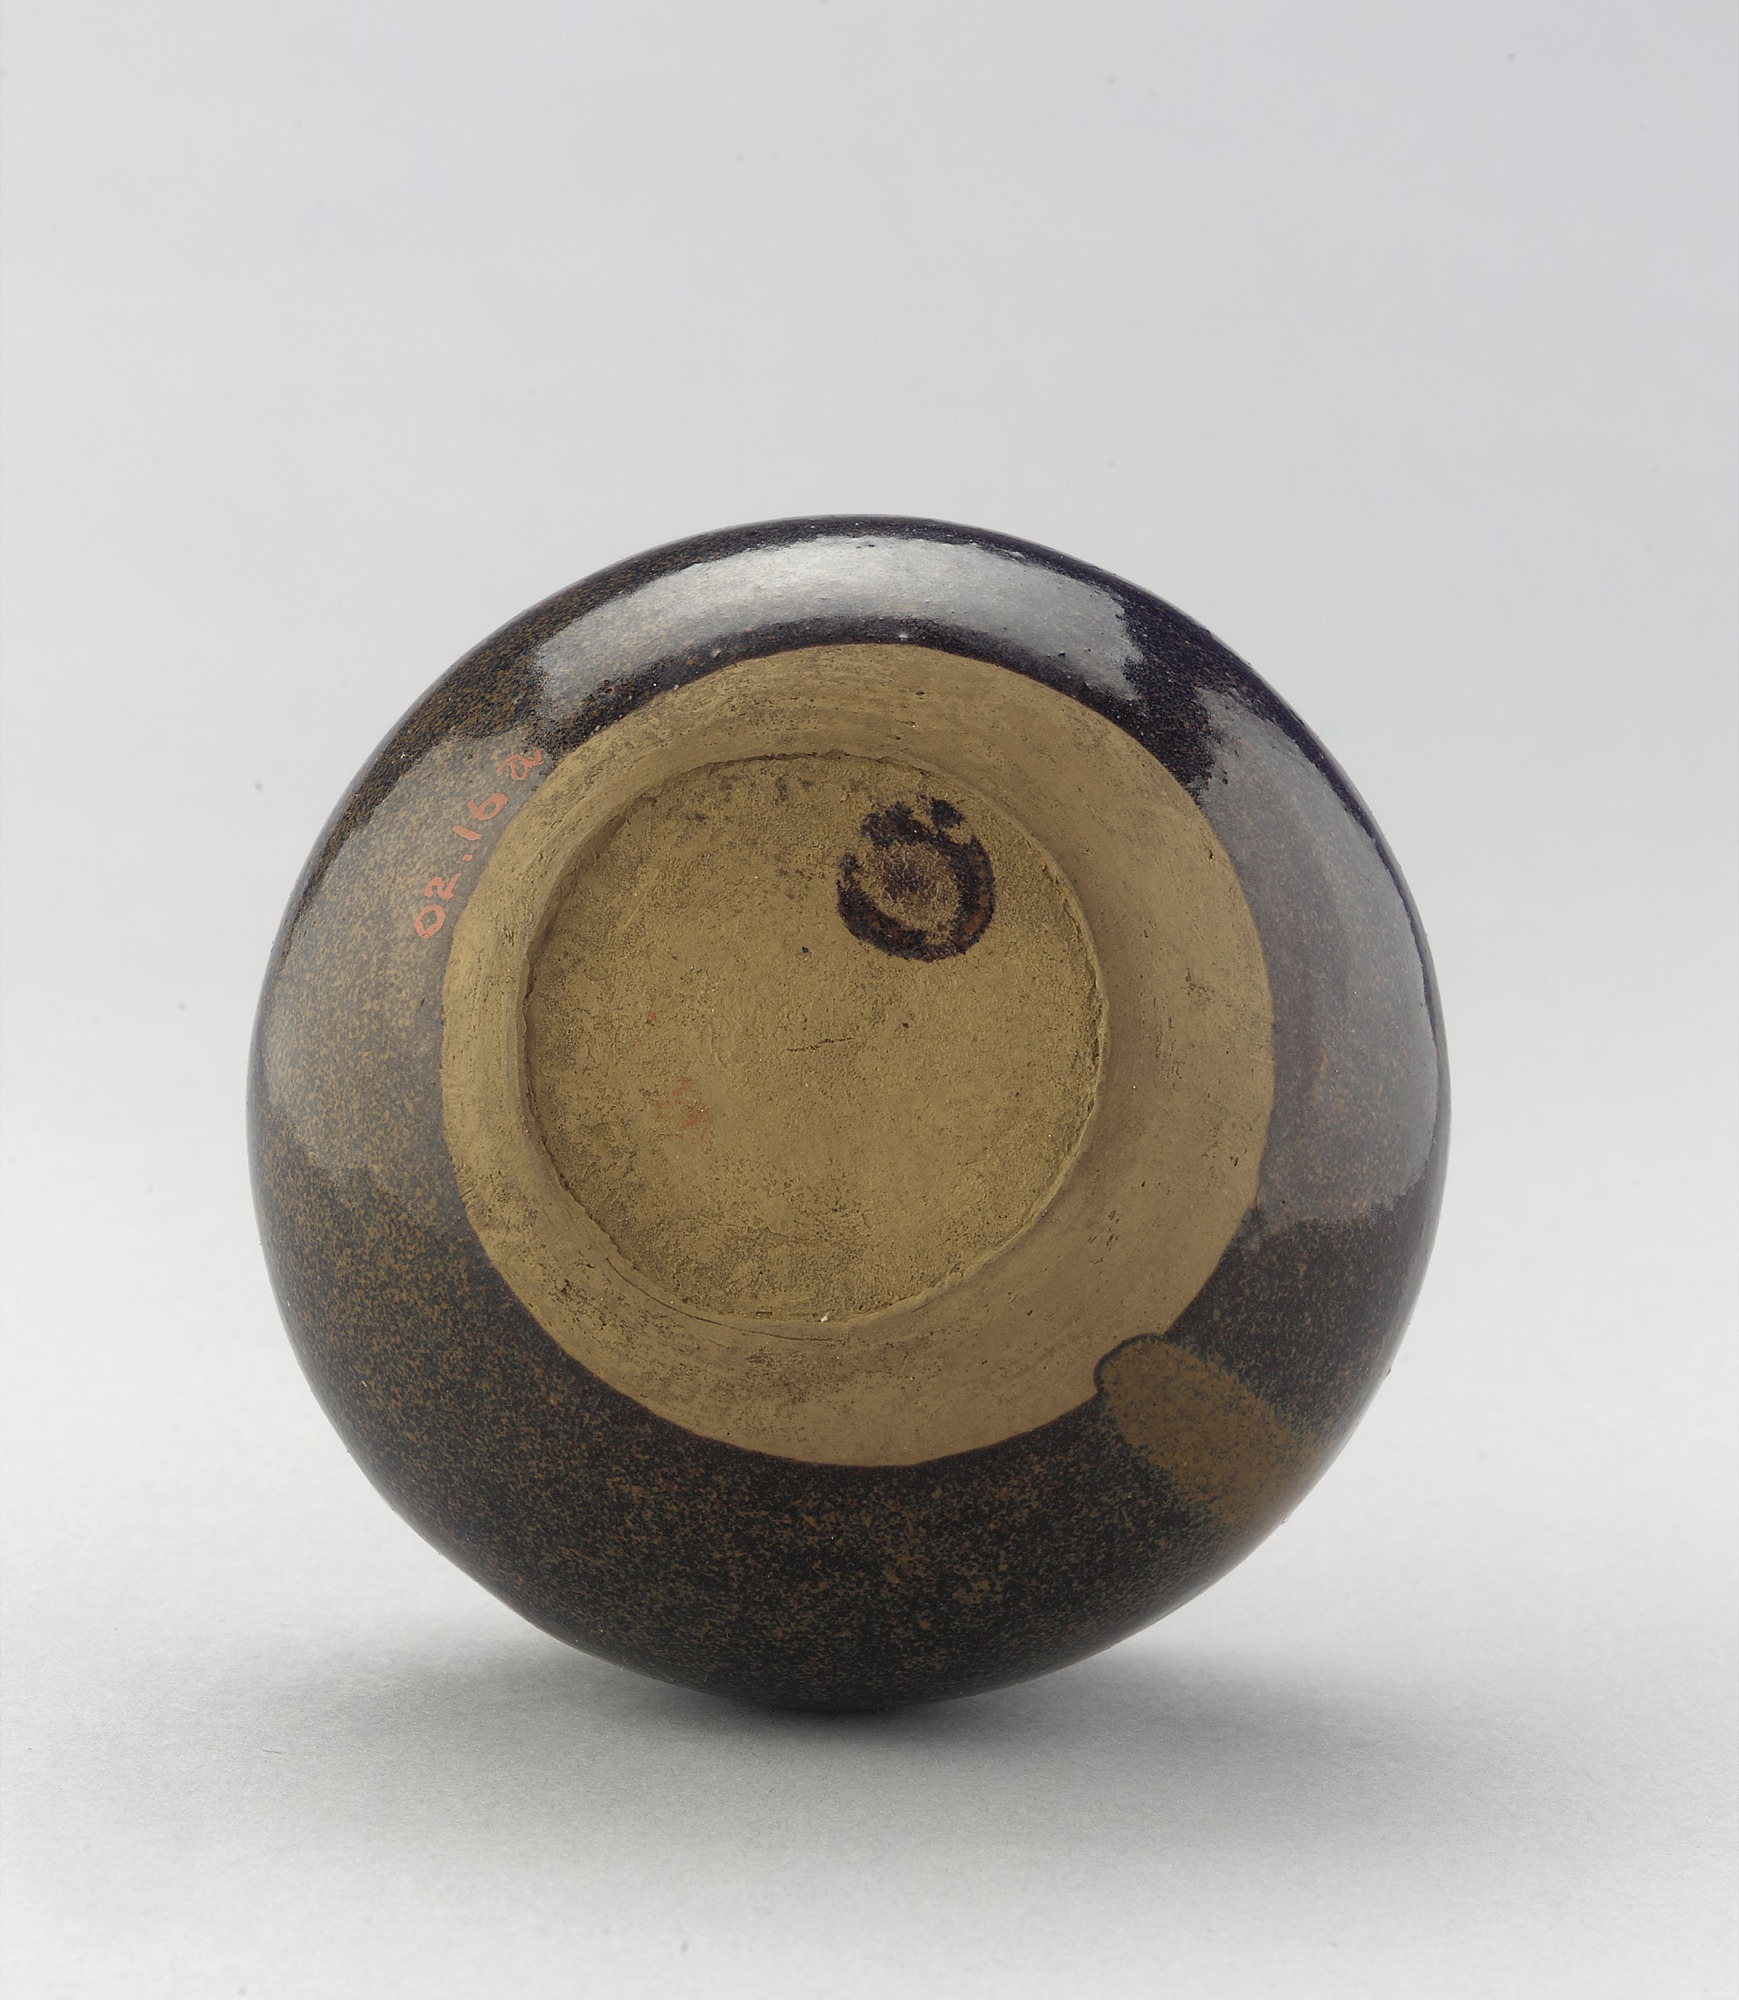 base: Chinese (karamono) tea caddy, taikai type